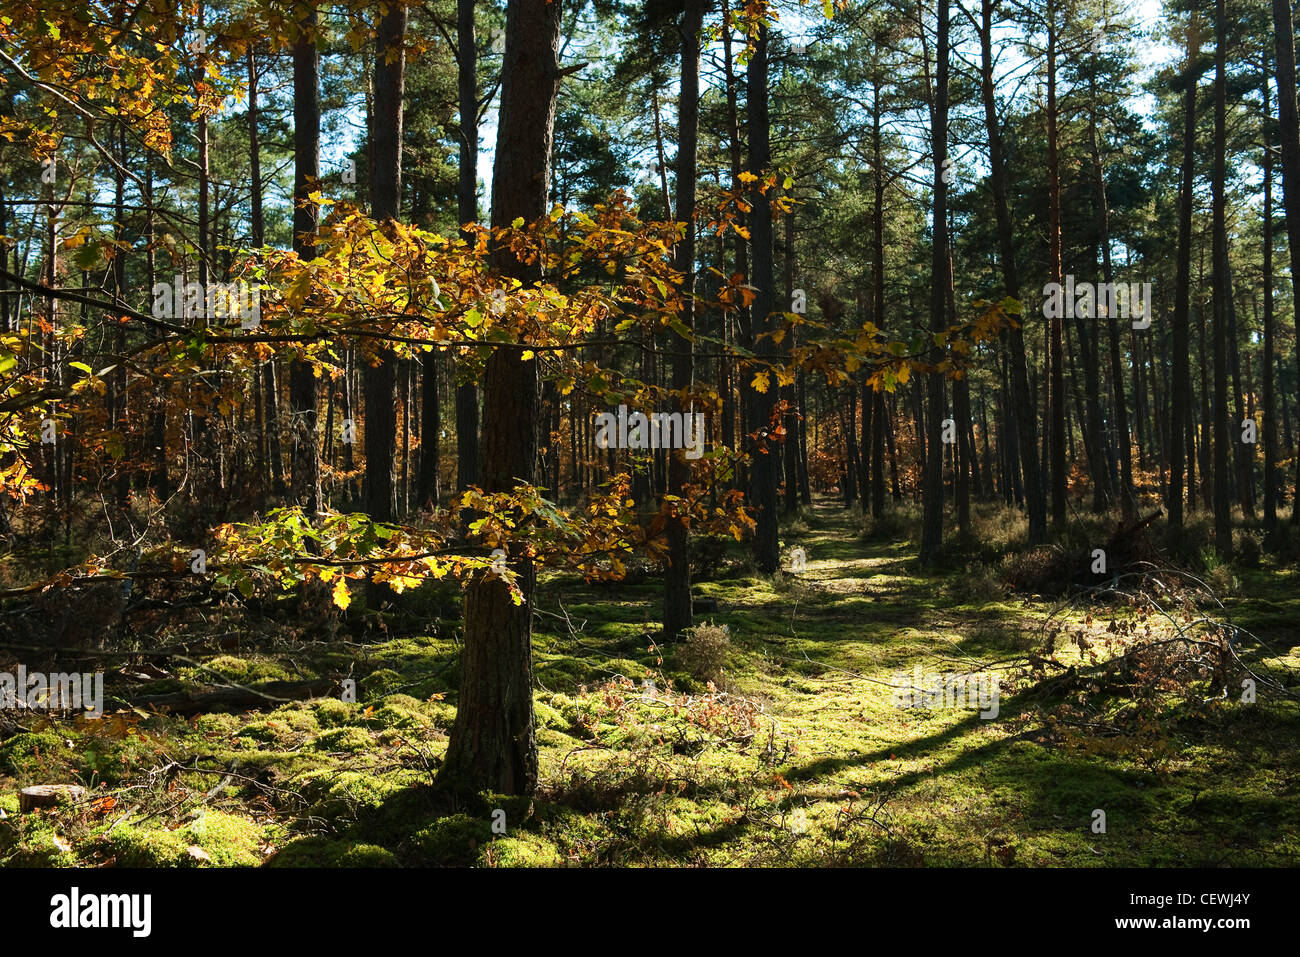 Woods in autumn hues - Stock Image